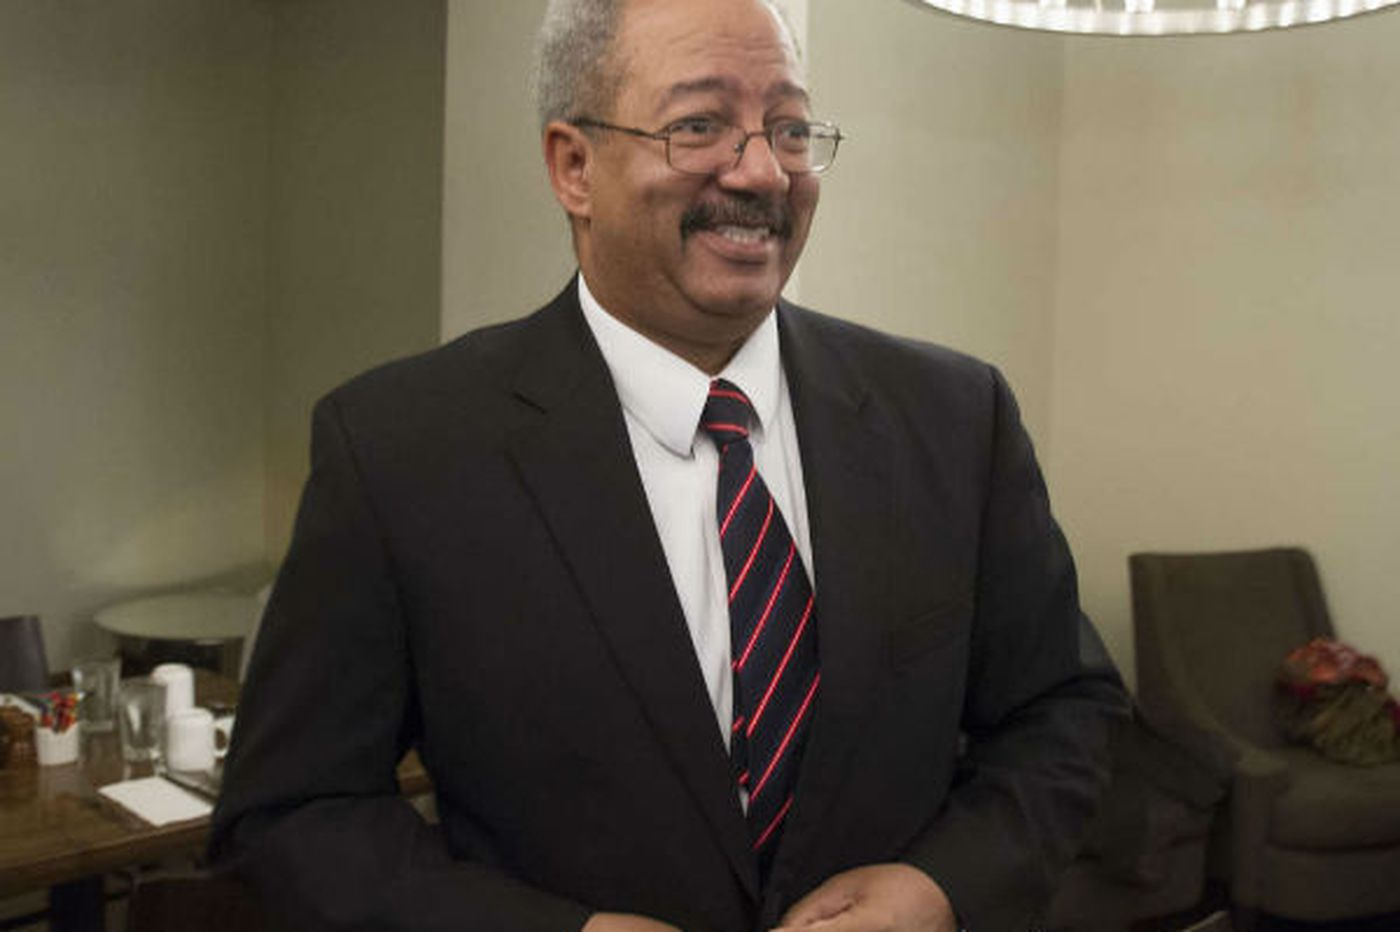 Experts say legal case against Fattah could be difficult to make